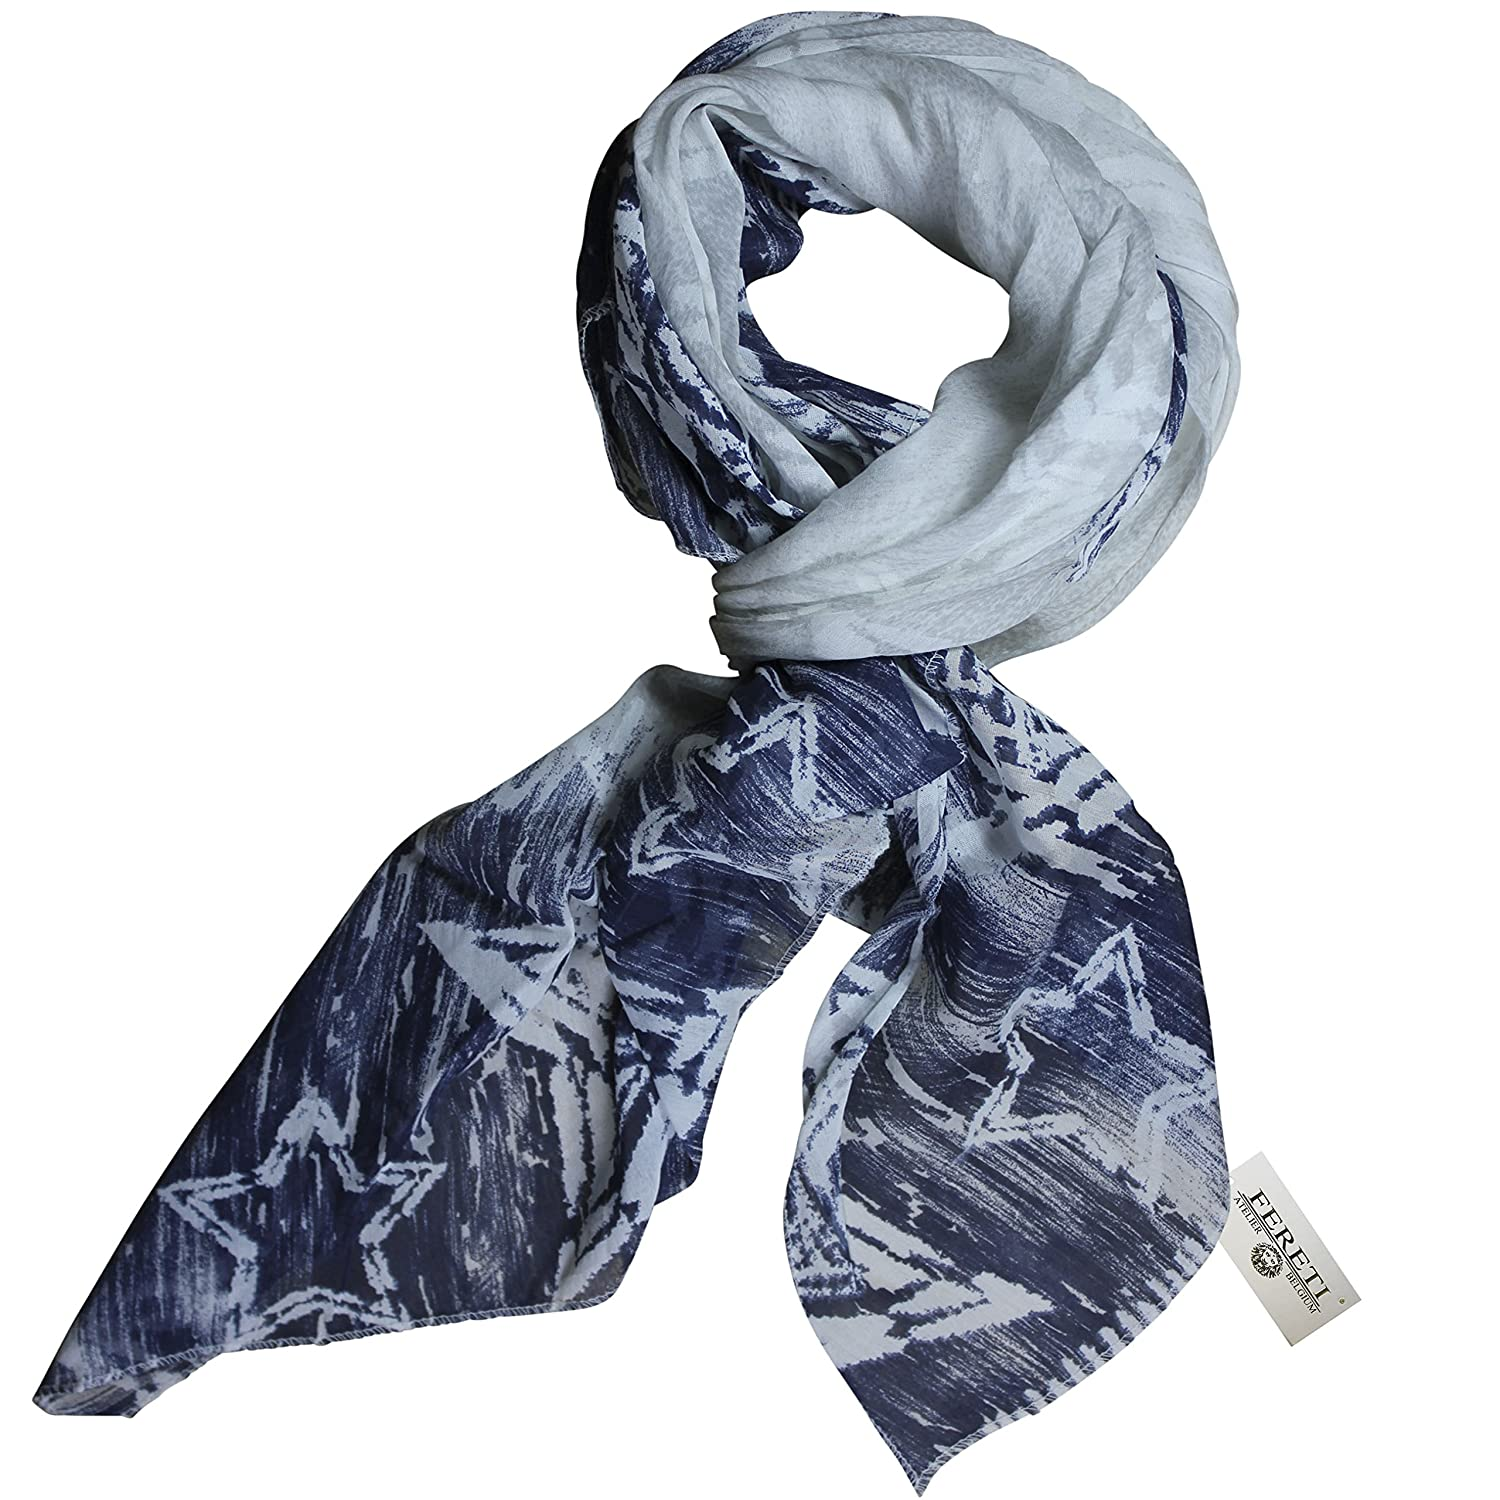 FERETI Large soft silk scarf pale Grey and Bleu for women with stars made in Italy